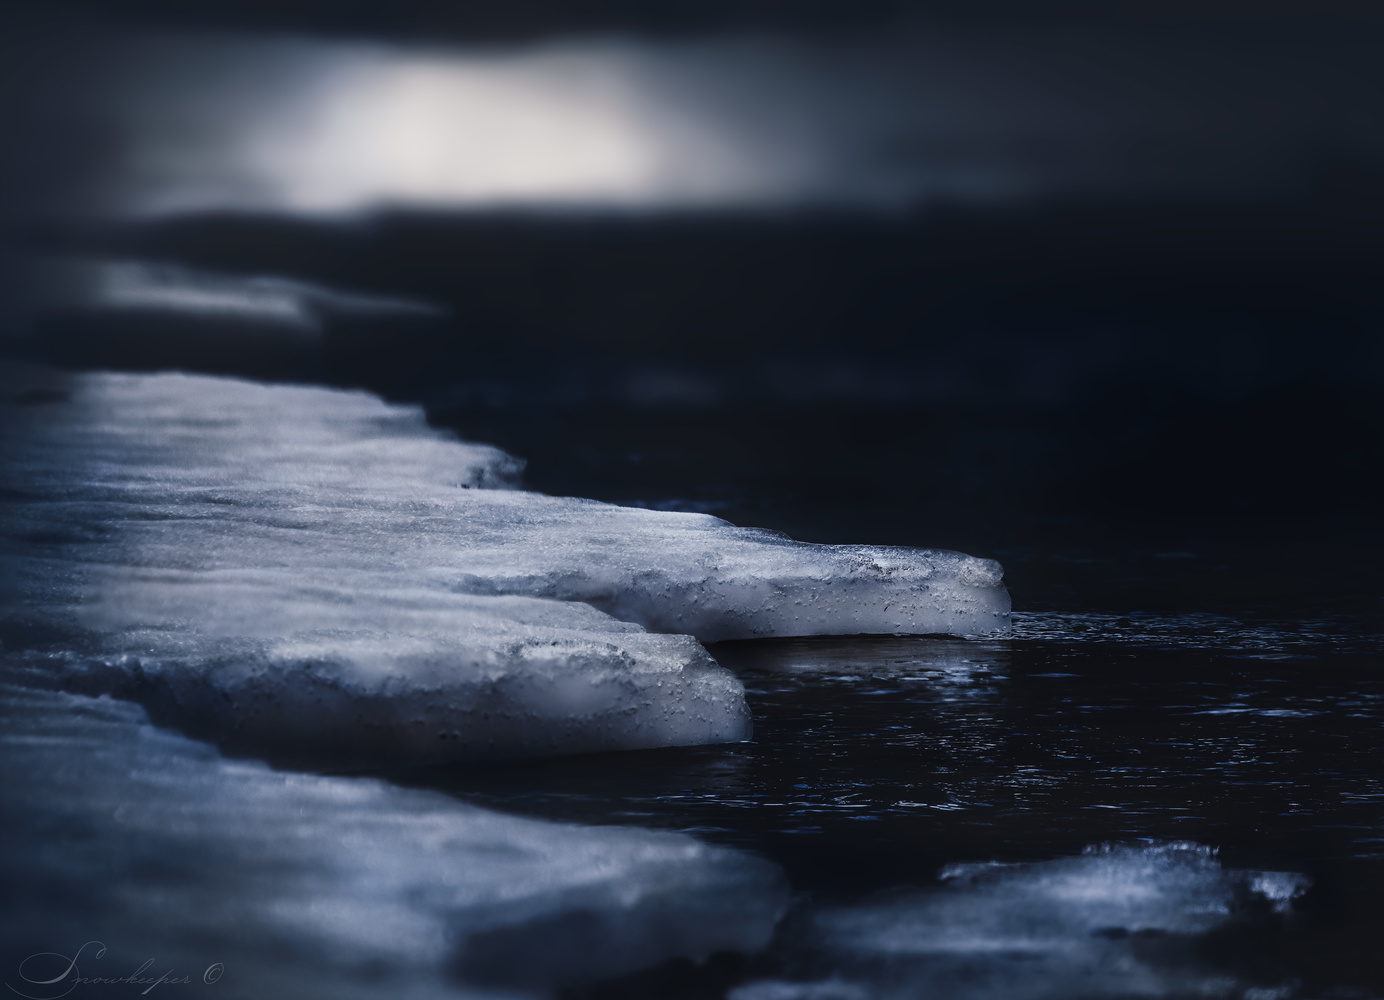 Night Ice by Heather Langlois